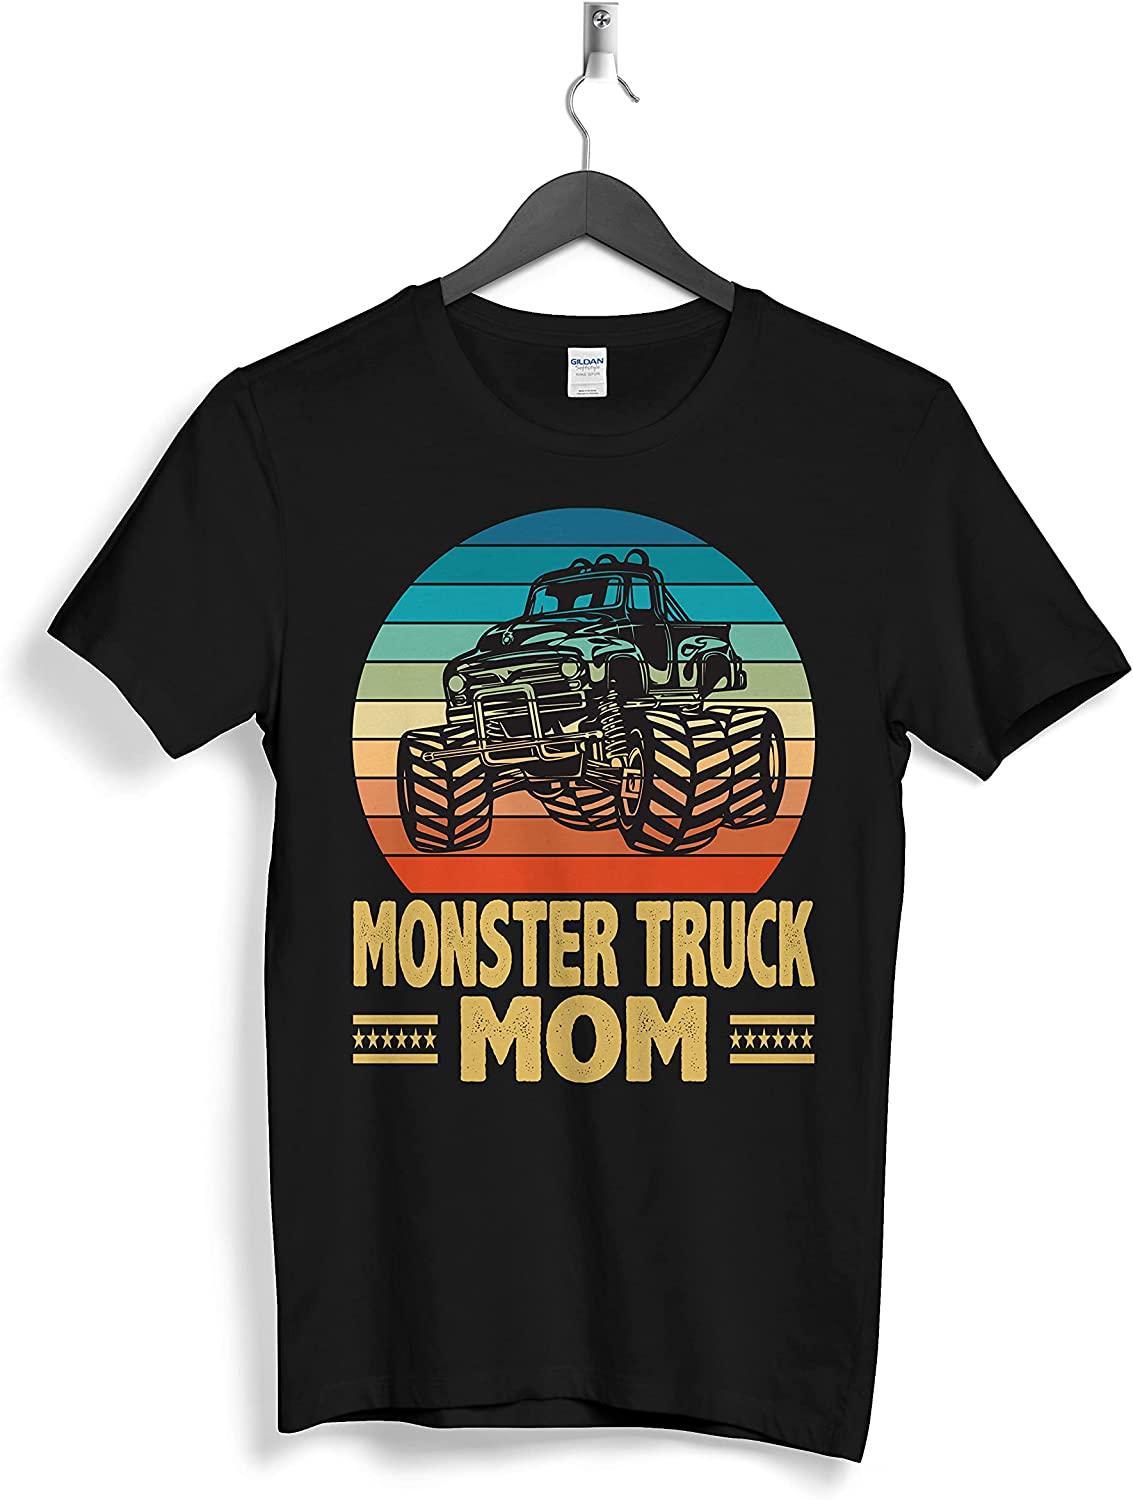 Monster Rruck Family Mom Custom Personalized T-Shirts Gifts